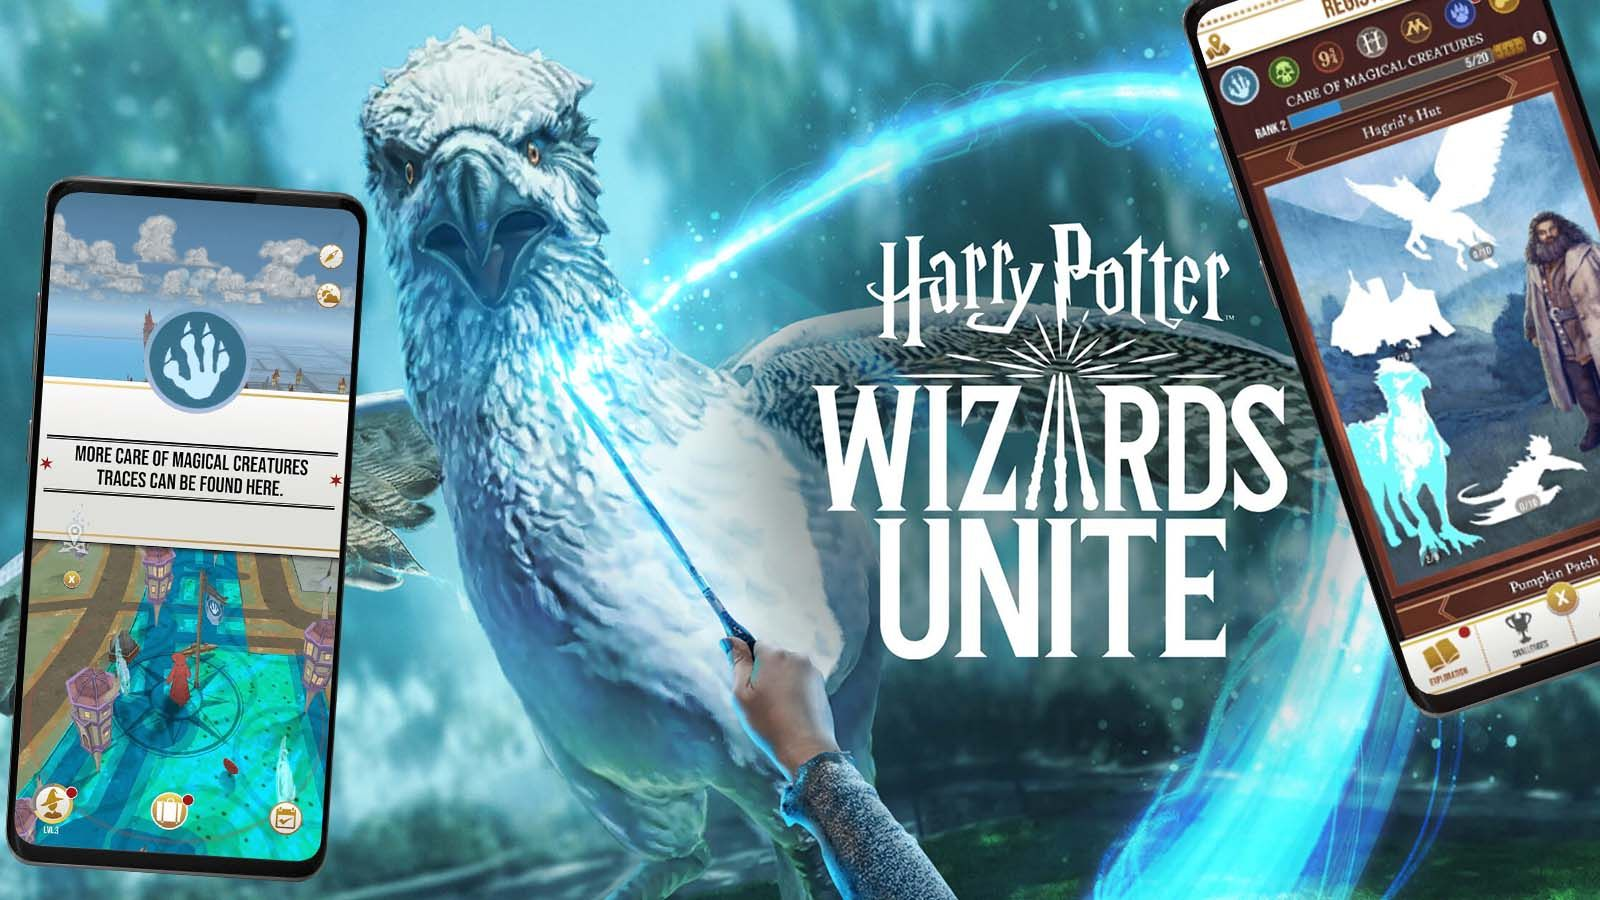 No Way Niantic S Hyped Harry Potter Game Is A Pokemon Go Reskin Niantic Pokemon Go Harry Potter Games